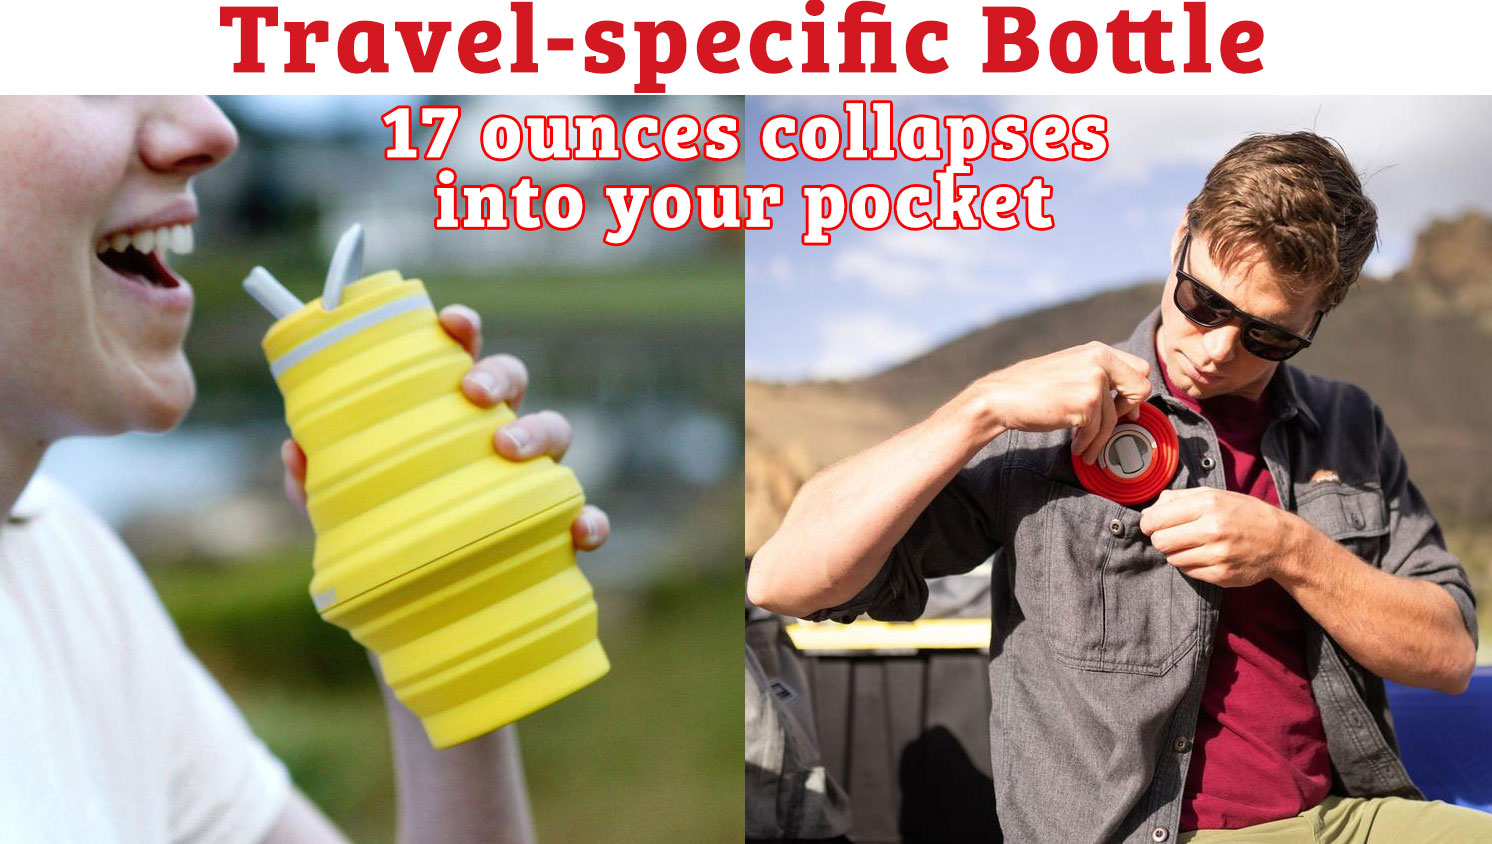 hydaway Travel-specific 17 ounces collapses into your pocket Bottle